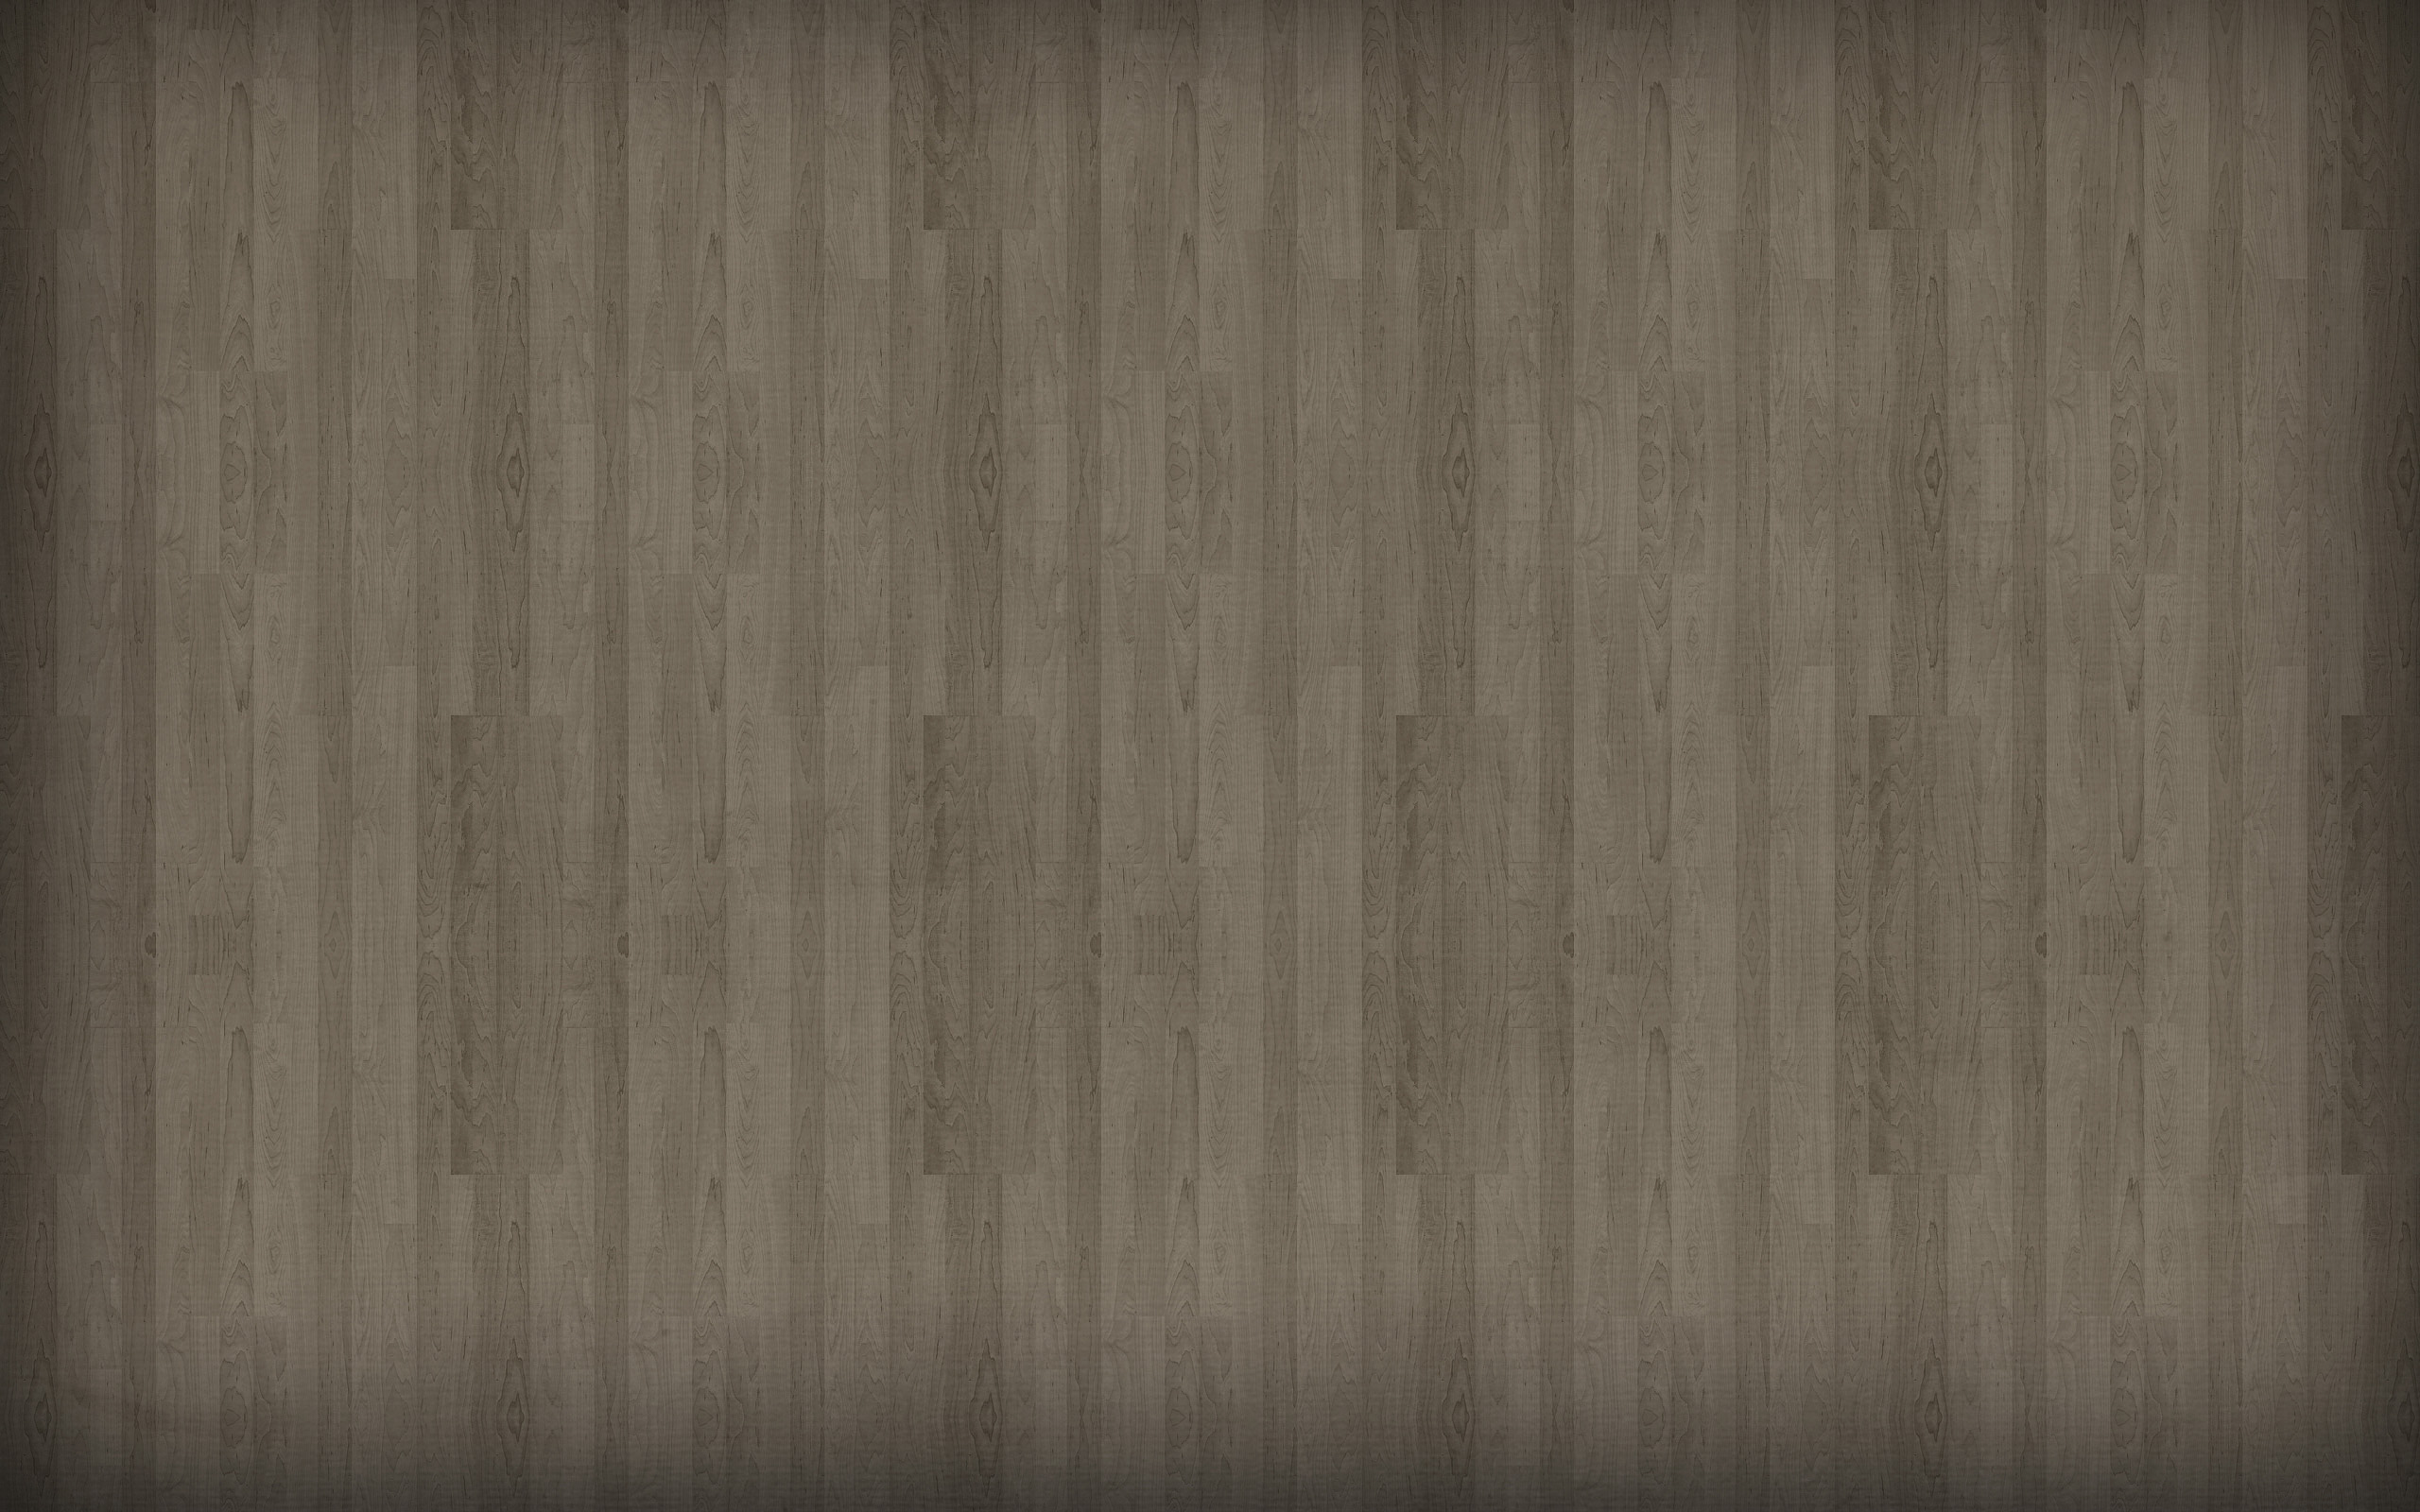 Superb img of Floor wood textures wood panels wallpaper 2560x1600 227407  with #665E50 color and 2560x1600 pixels